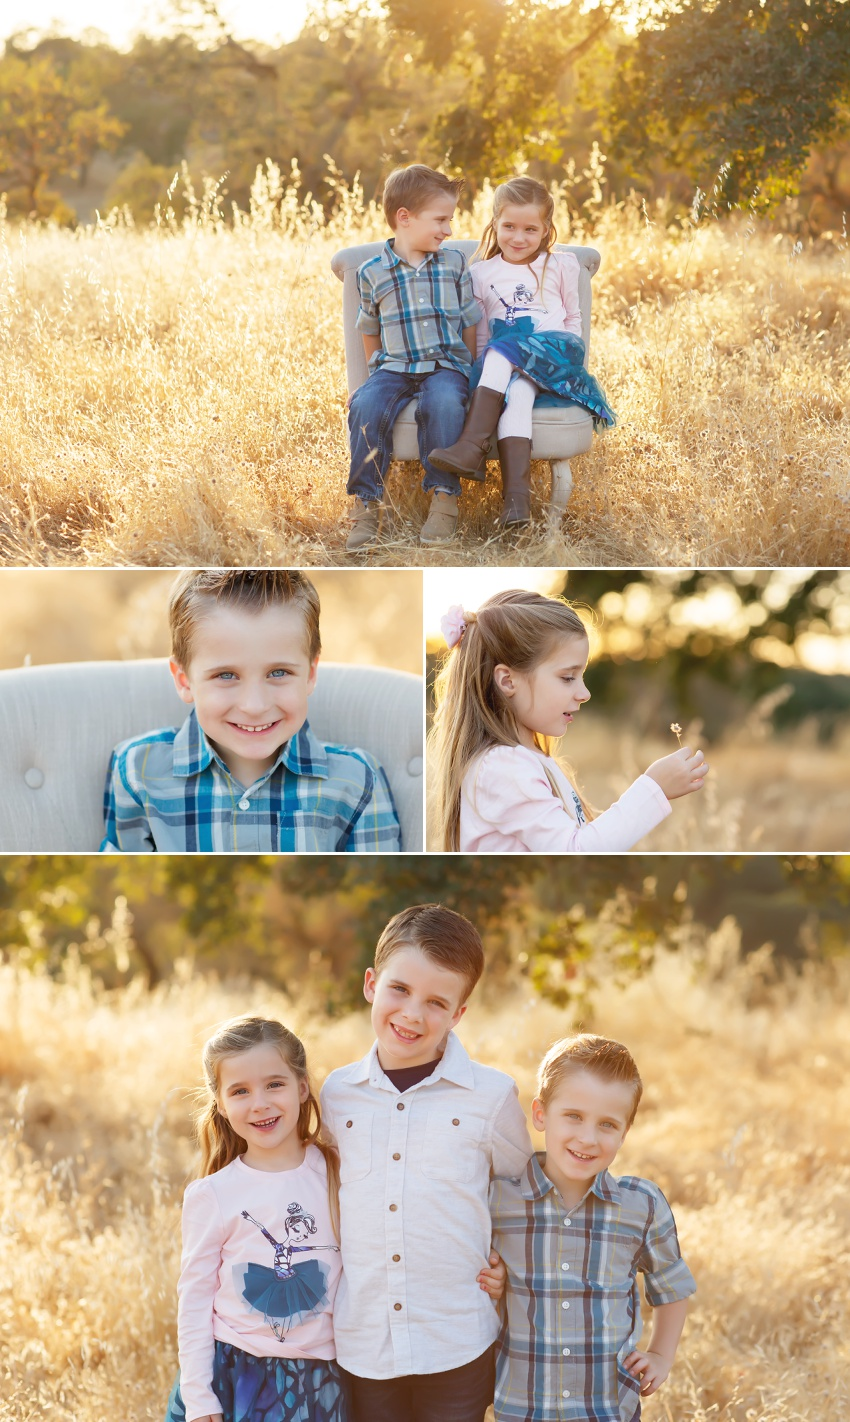 Fall family pictures in Folsom with El Dorado Hills photographer Colleen Sanders grasses oak trees golden light kids family fall mini sessions Sacramento area